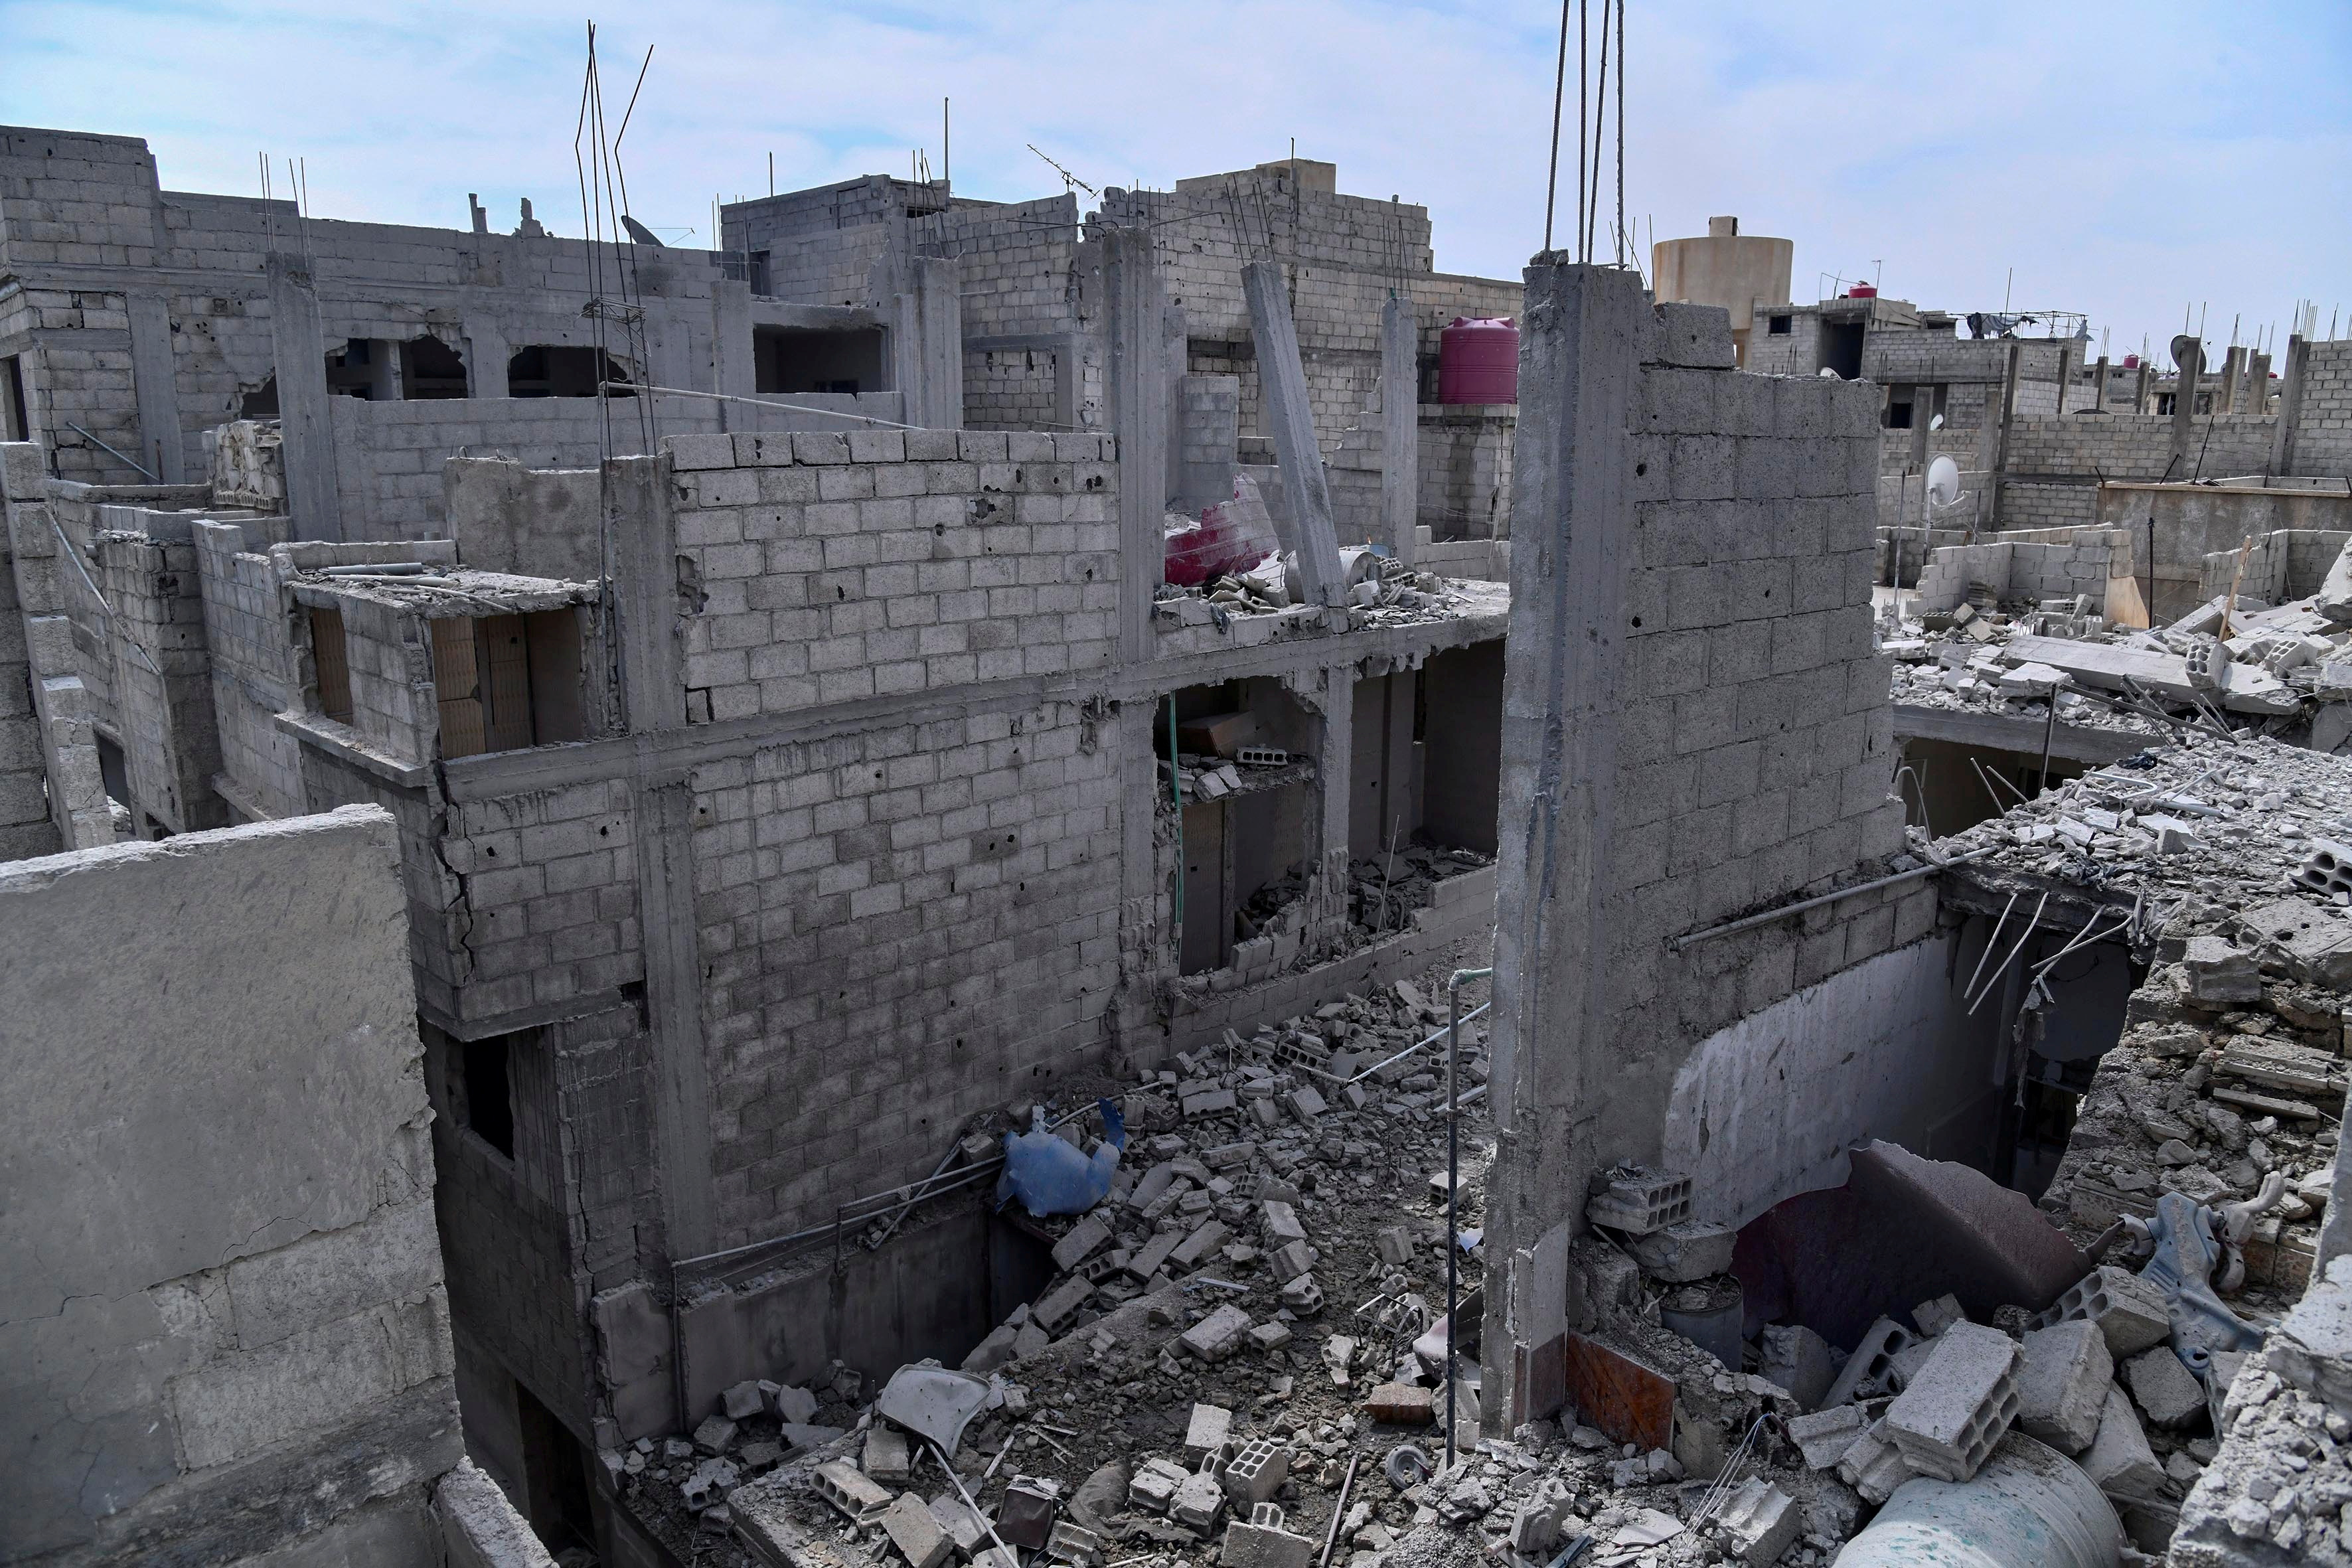 Damaged buildings are shown after what Syrian authorities said was an Israeli air strike in the western suburbs of Damascus, Syria in this handout released by state news agency SANA on April 27, 2020. SANA/Handout via REUTERS